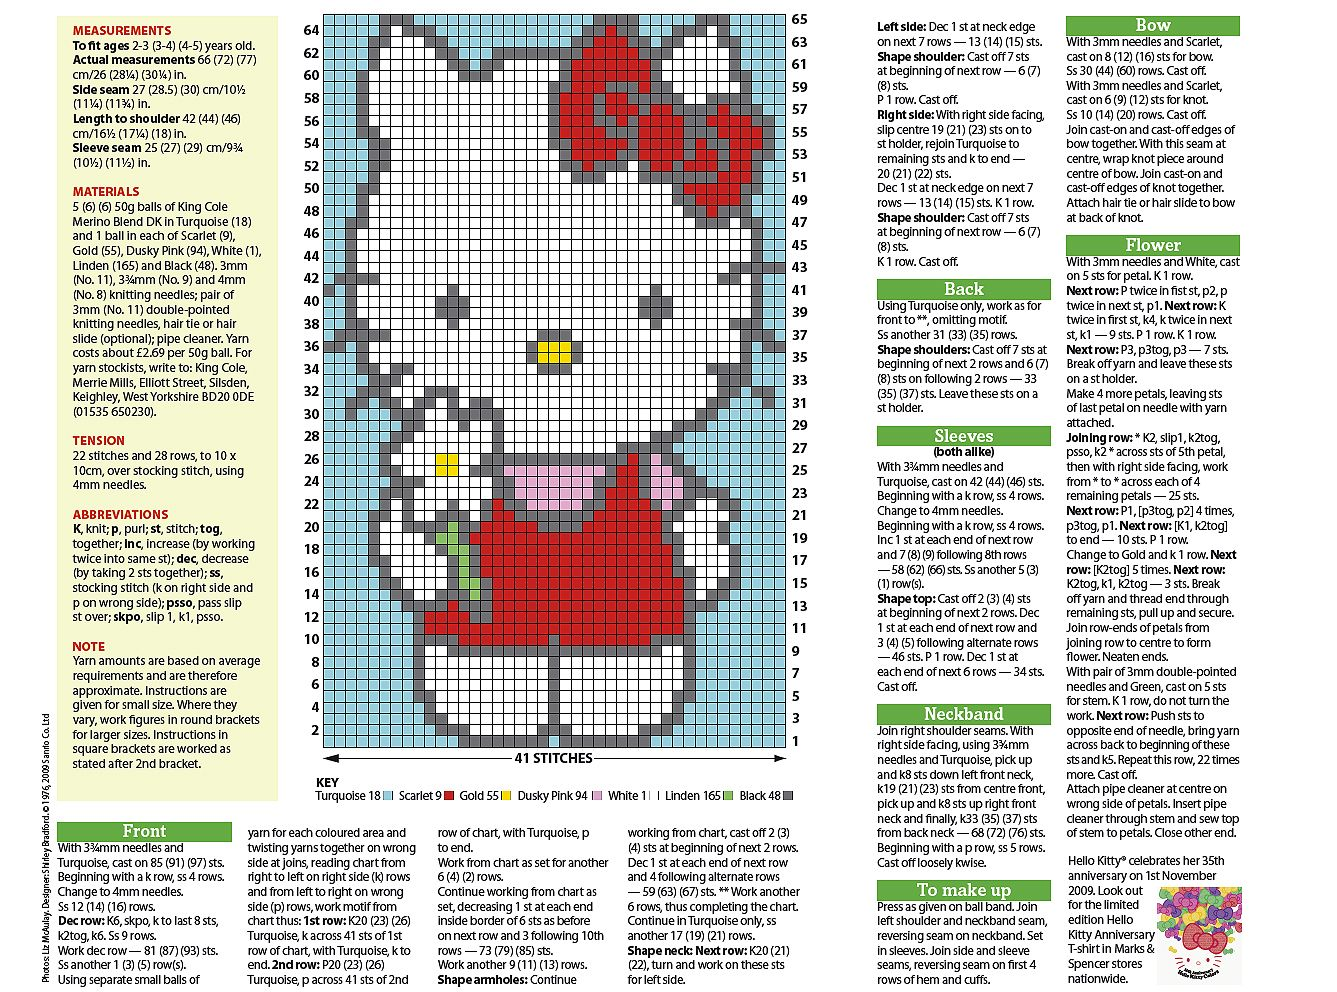 Knitting Pattern For Hello Kitty Sweater : Hello kitty jumper knitting pattern - could also use for cross stitch Cross...